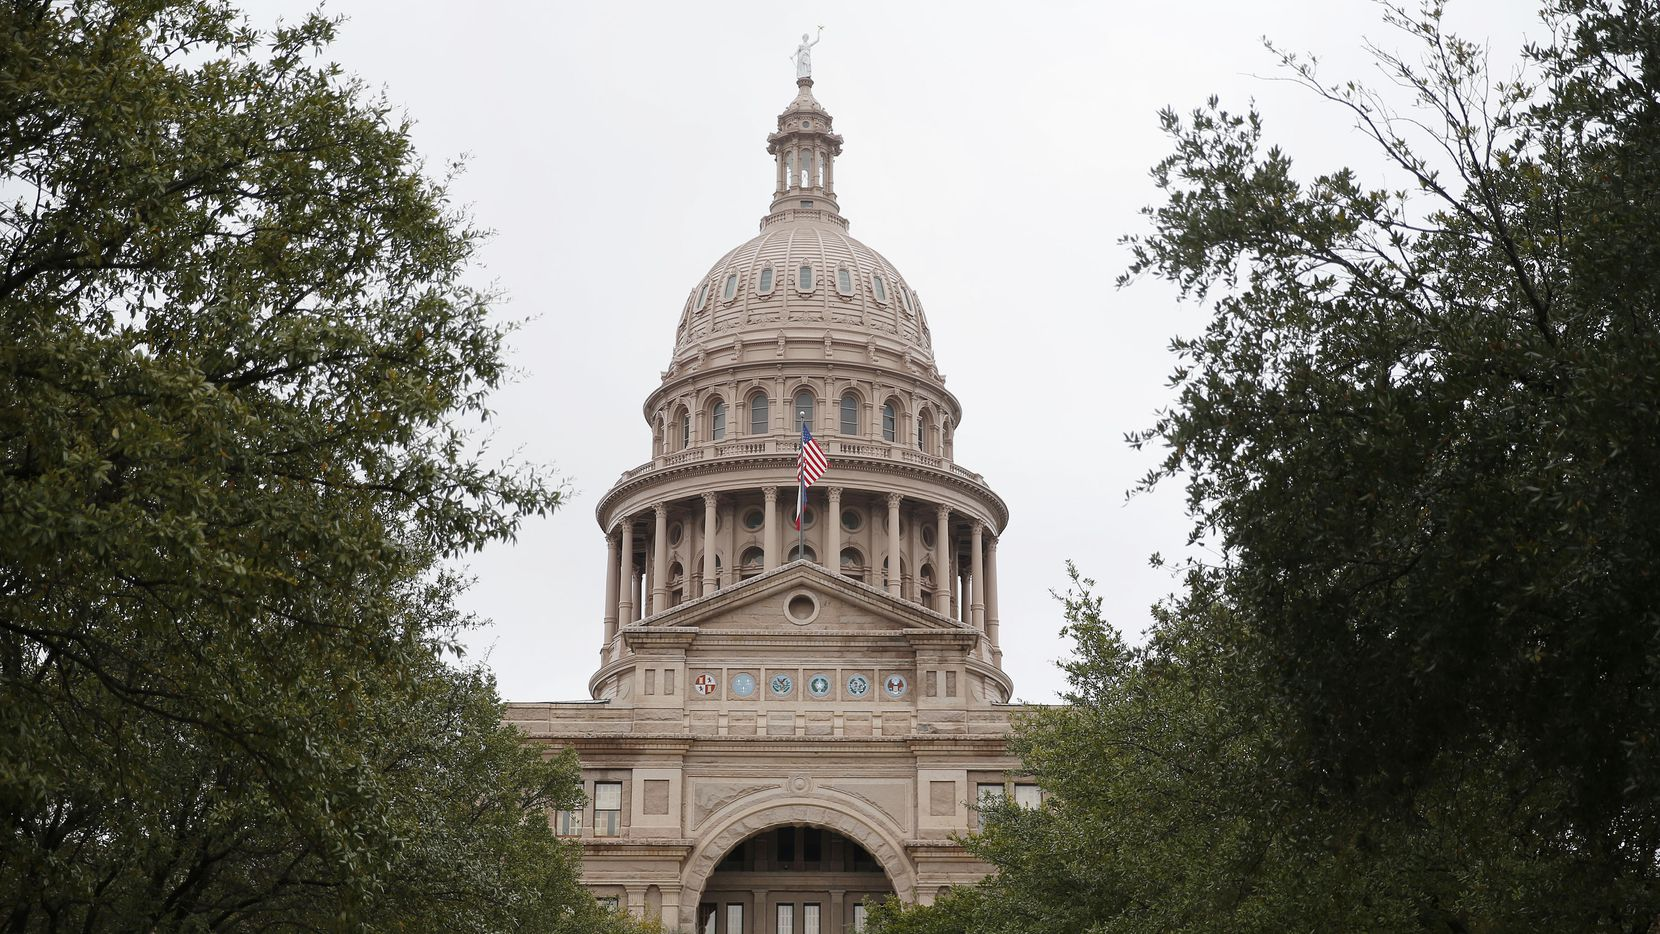 An exterior of the Texas State Capitol in Austin on February 4, 2015. (Andy Jacobsohn/The Dallas Morning News)